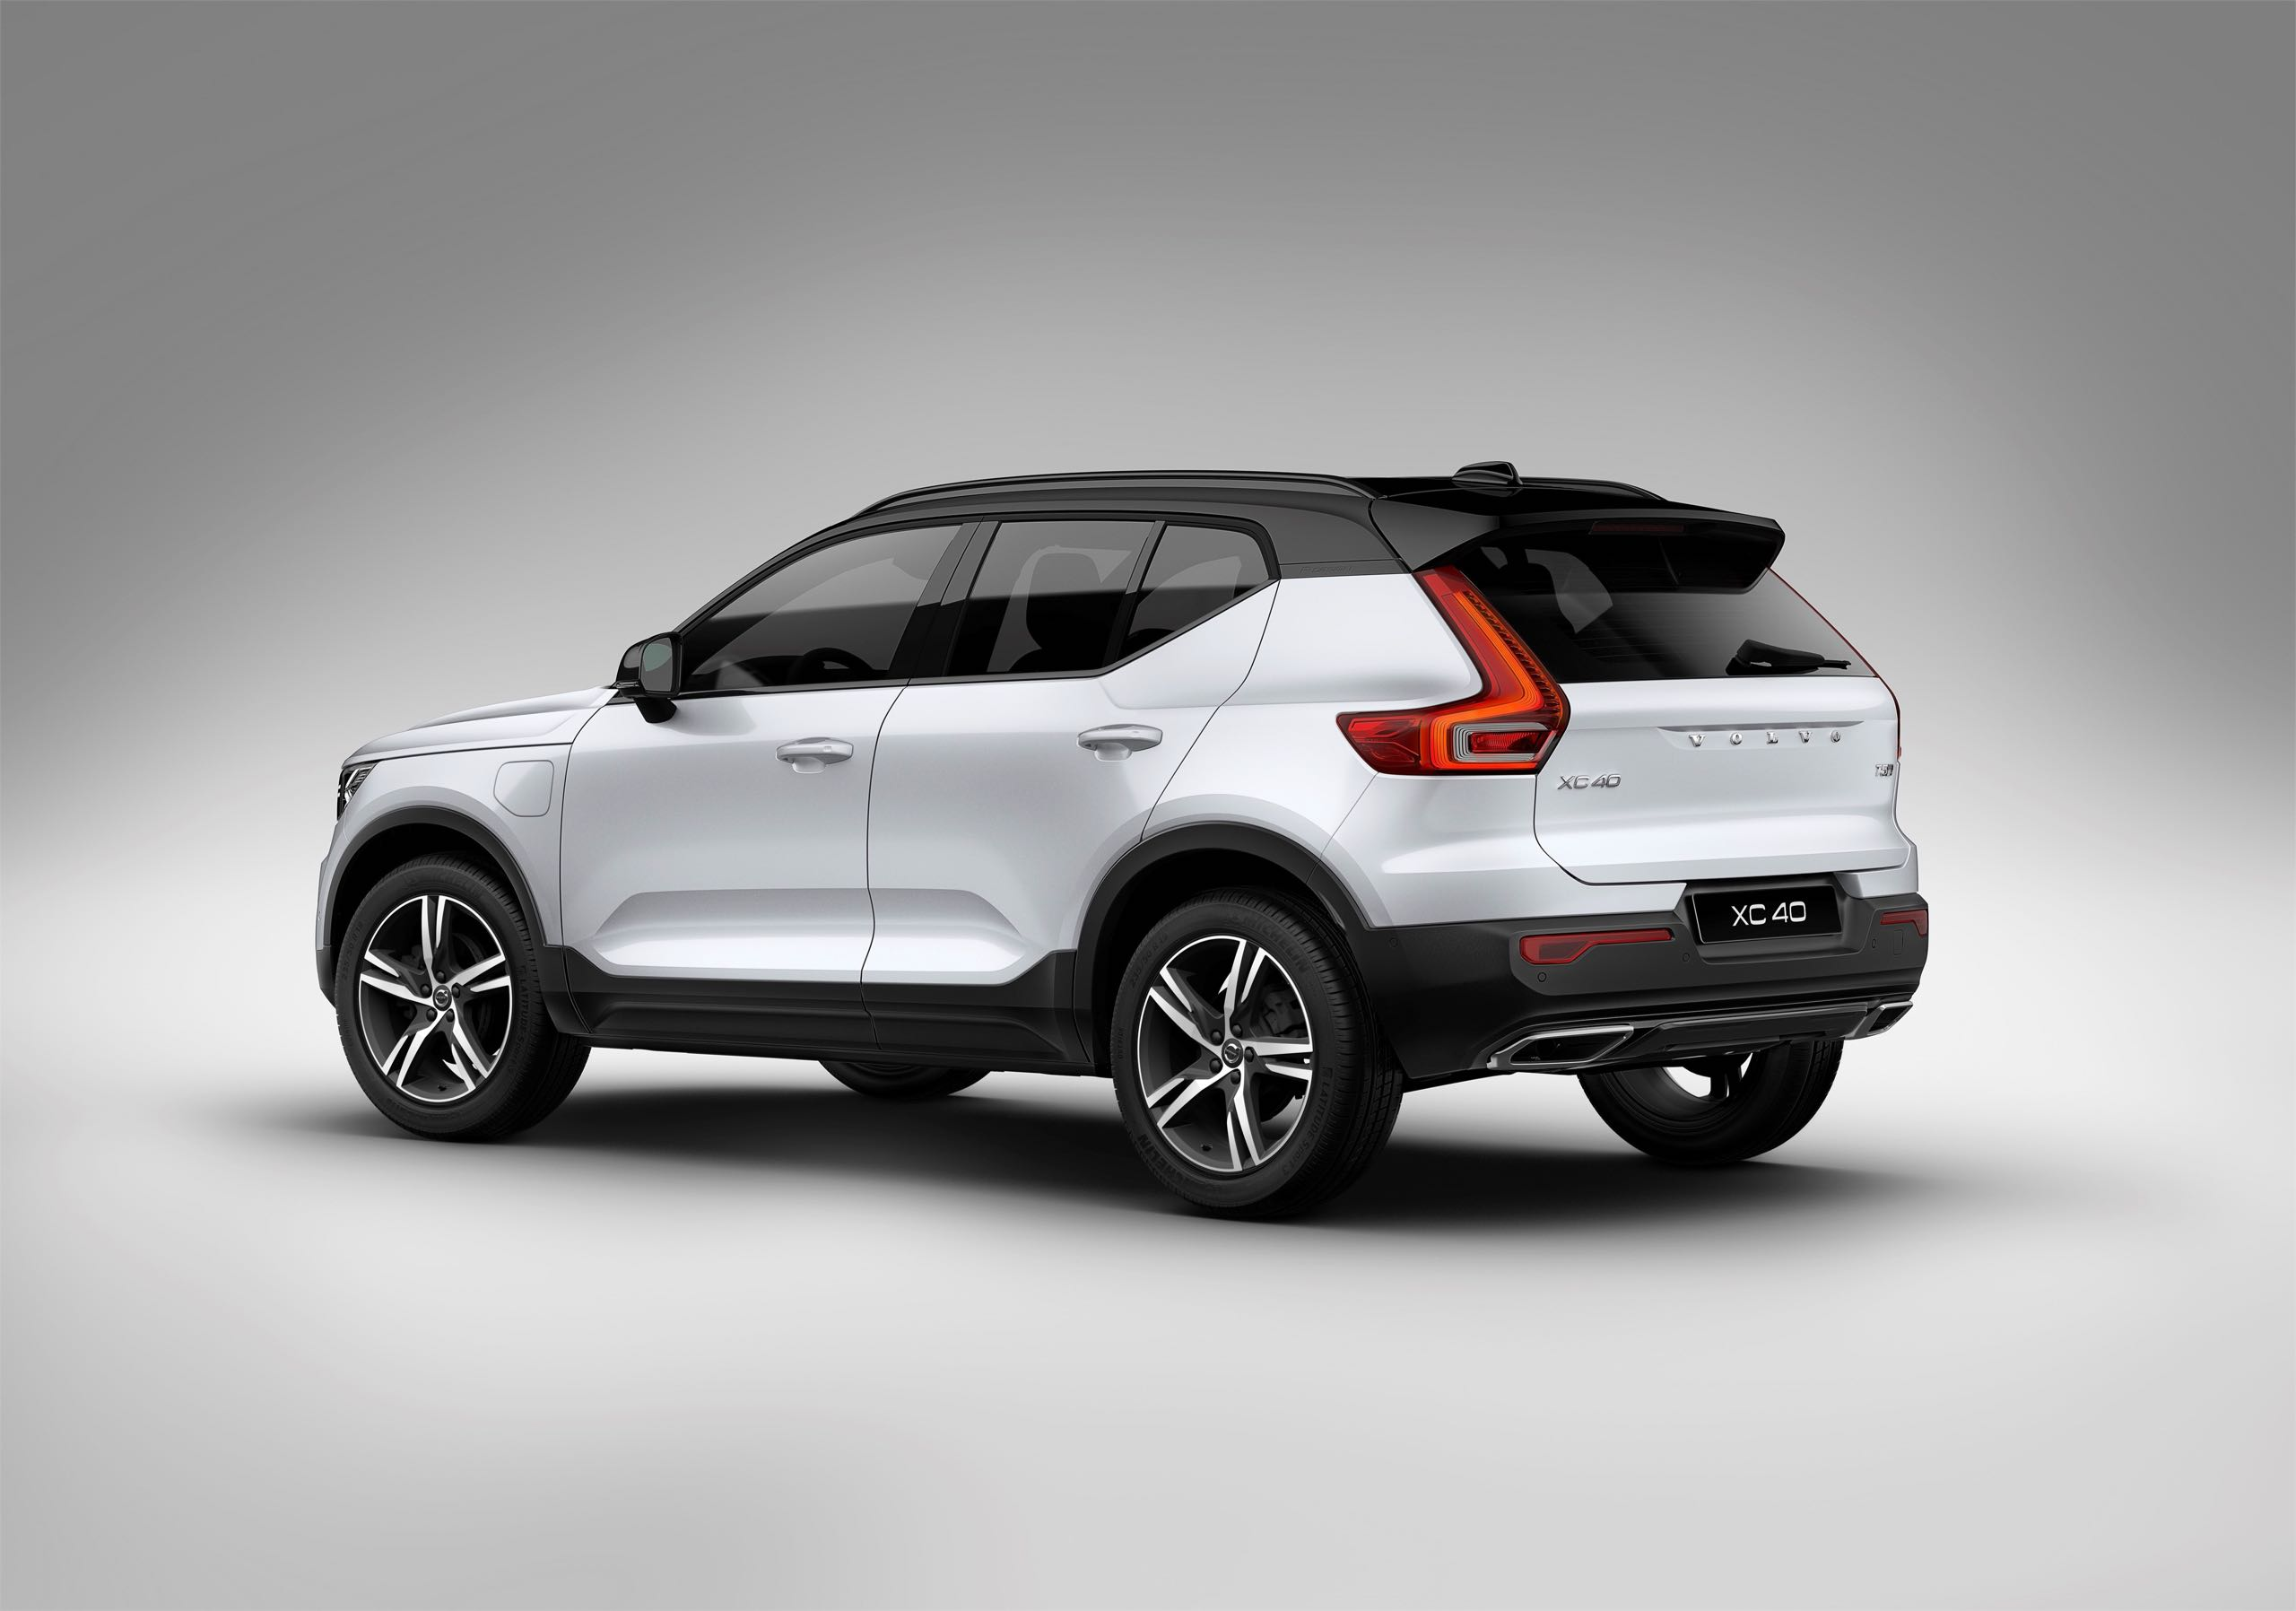 New Volvo XC40 T5 Plug In Hybrid -  2018, 2018 New XC40, Electrification, Exterior, Images, New XC40, Studio, Technology